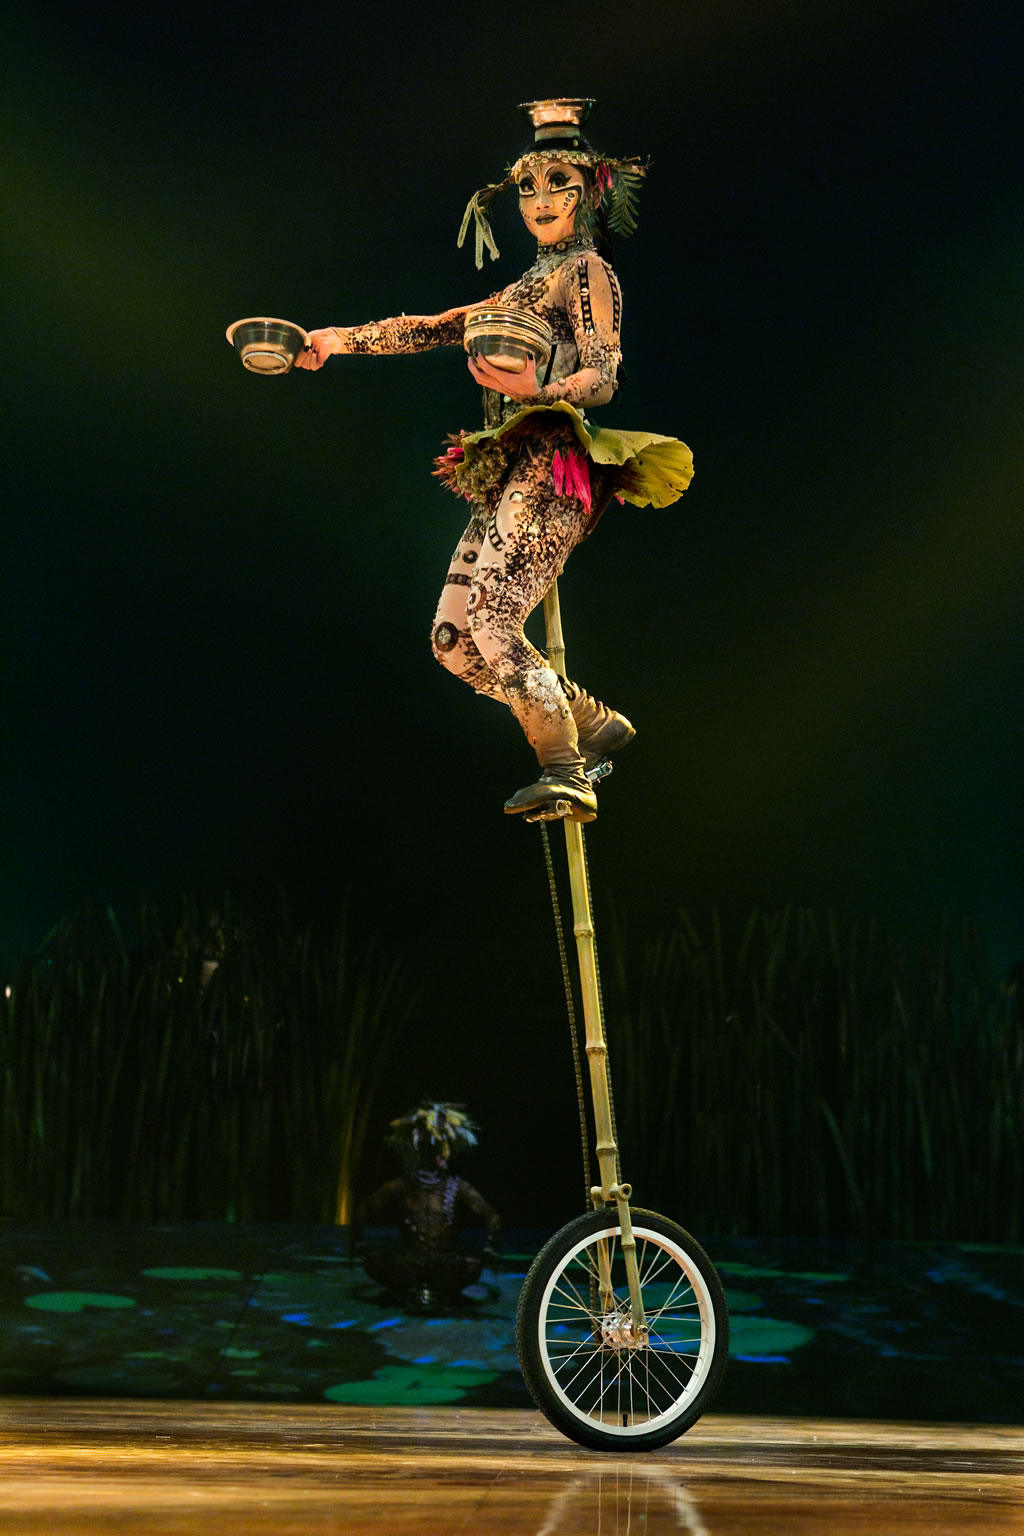 MSC Cruises teams up with Cirque du Soleil